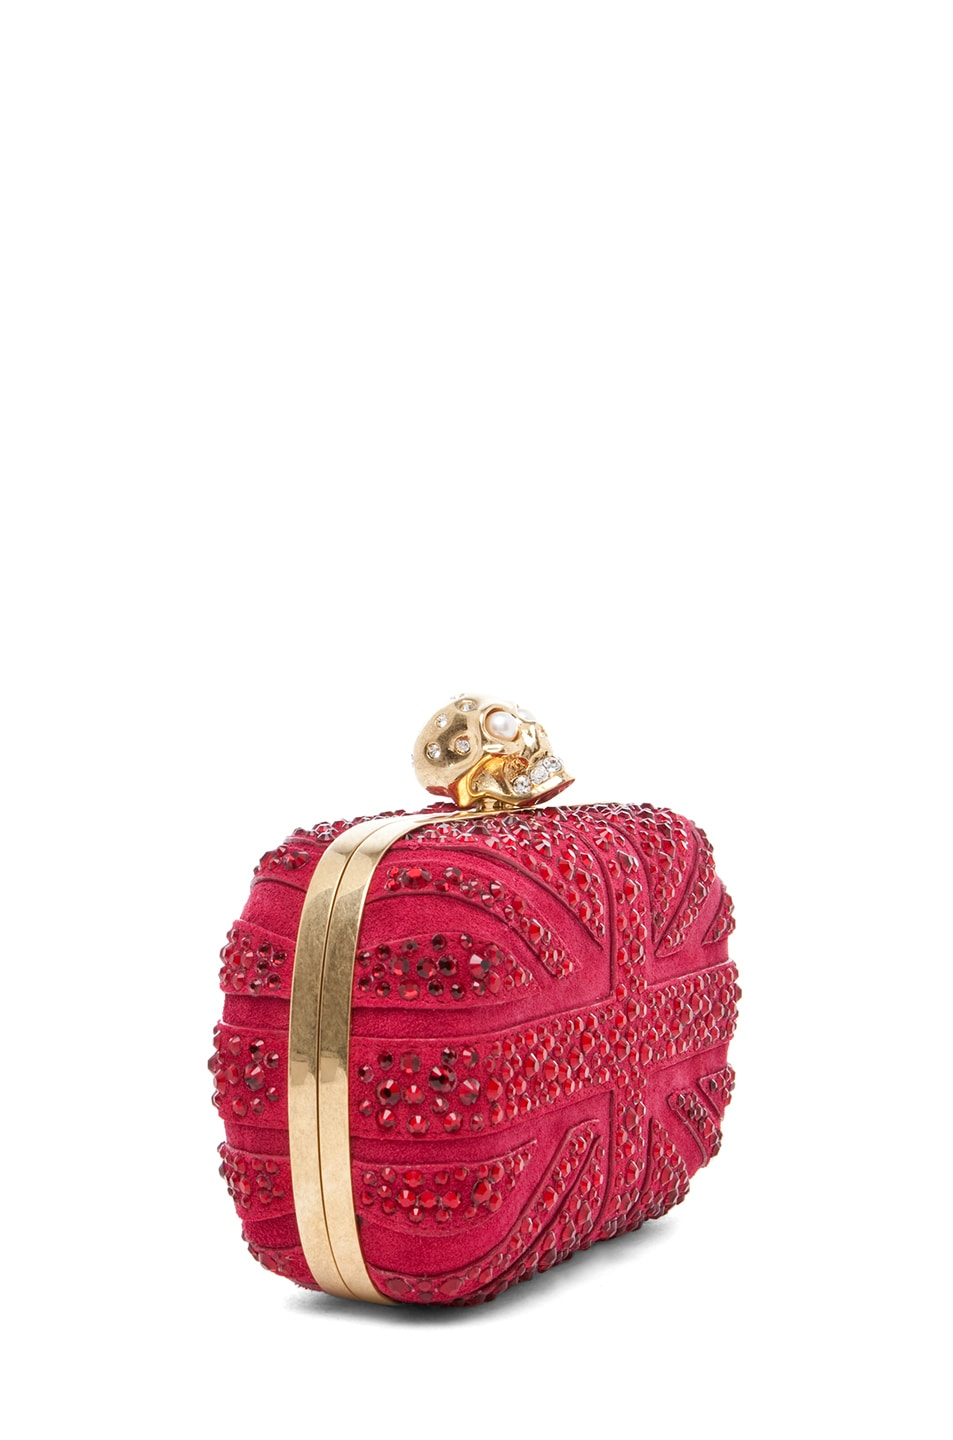 Image 3 of Alexander McQueen Britannia Skull Box Clutch in Dark Cherry